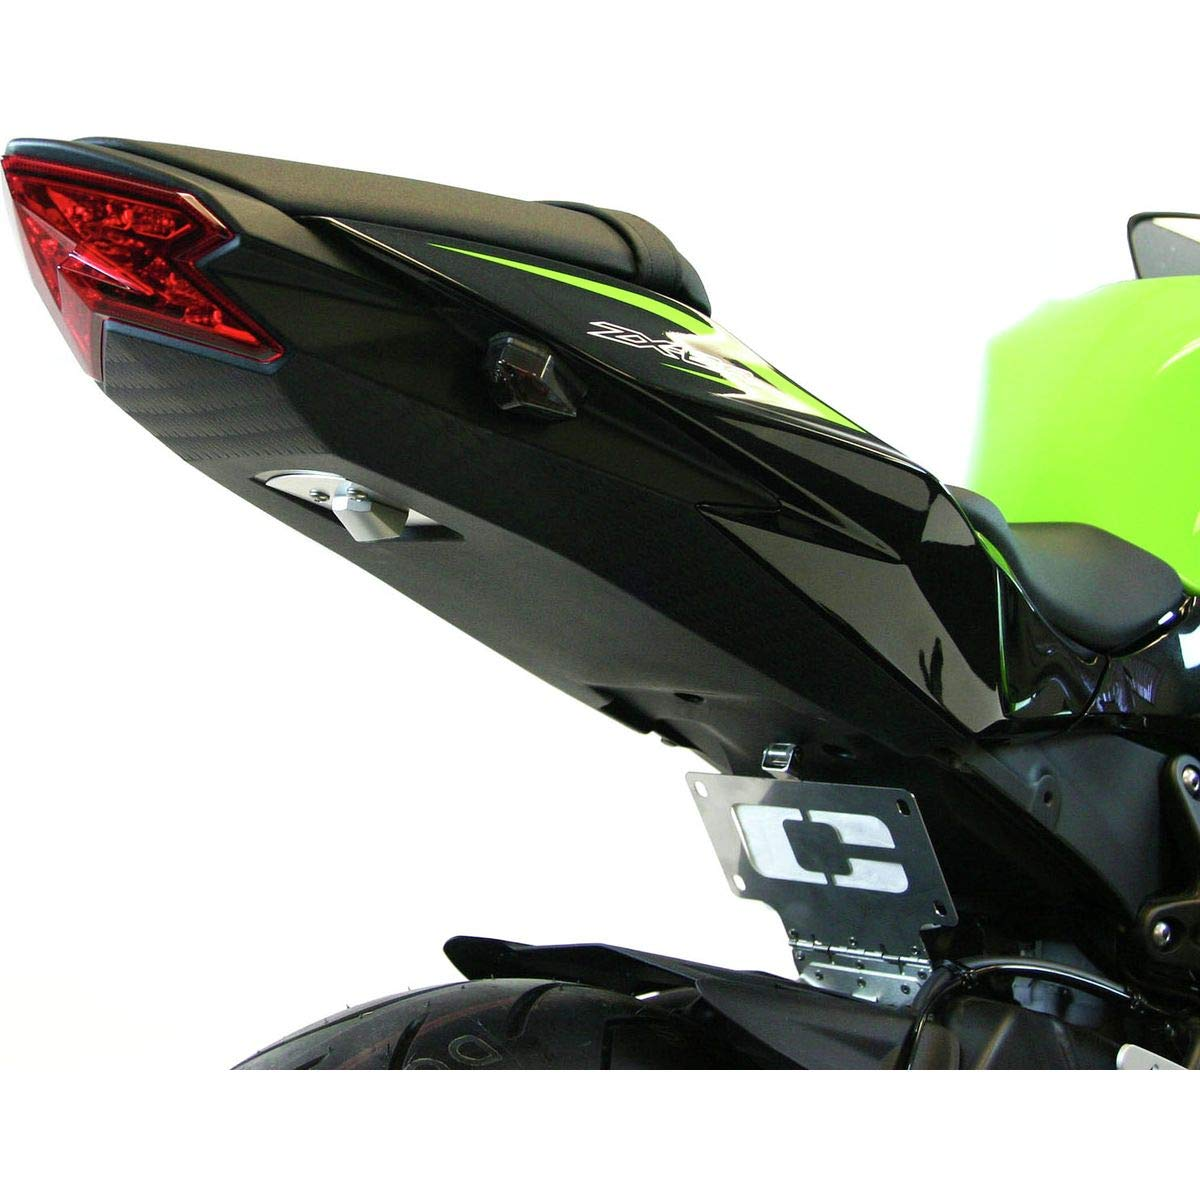 Limited Competition Werkes 13-18 Kawasaki ZX636 Fender Eliminator Kit